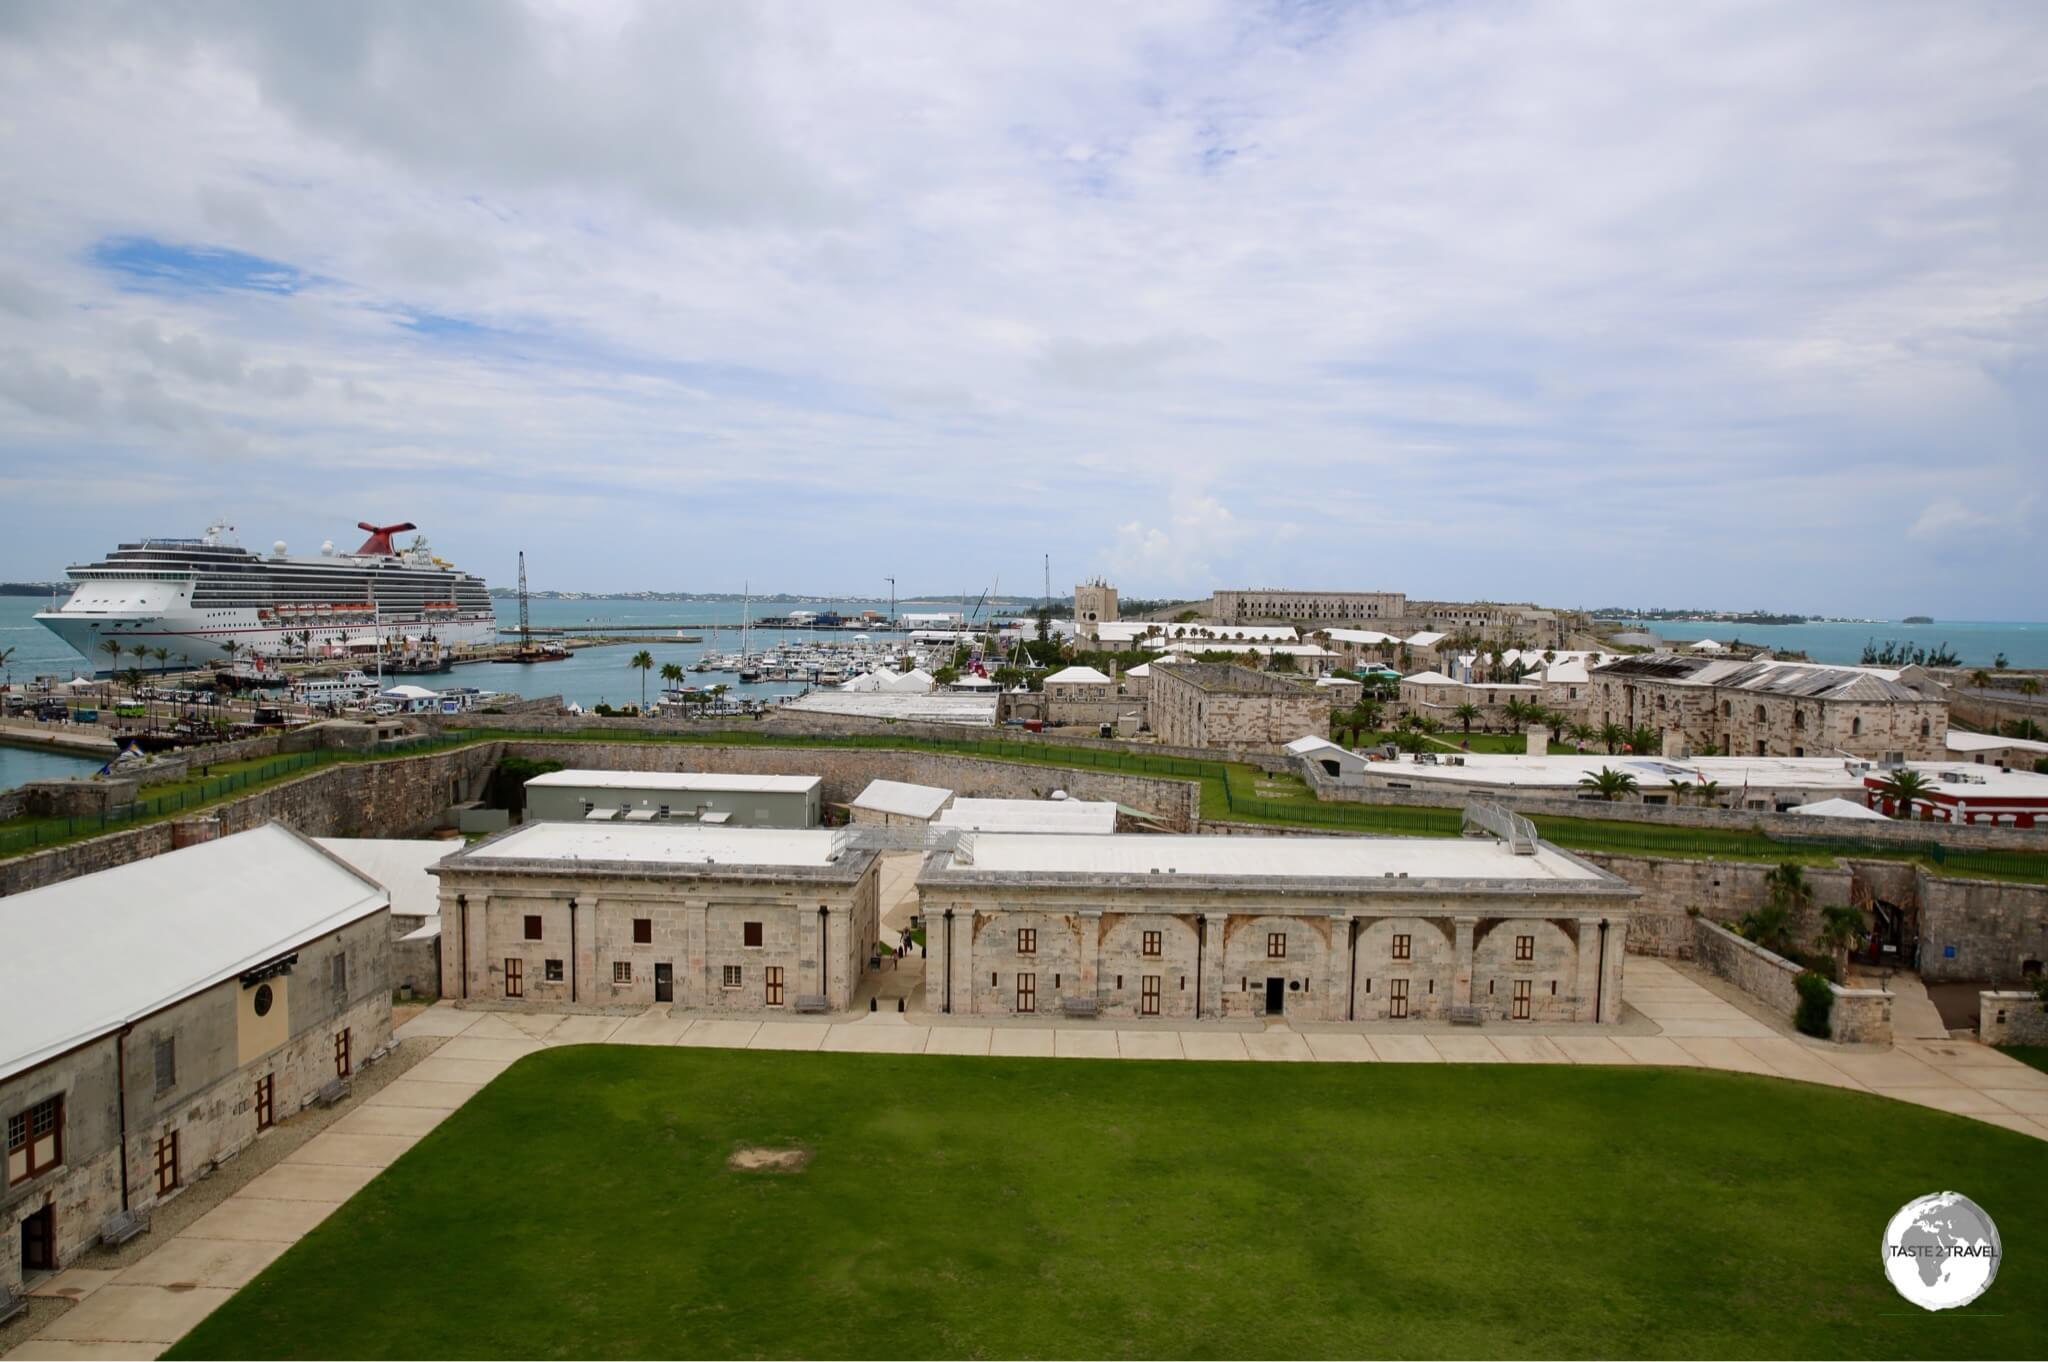 View of the Royal Naval Dockyard precinct from the Bermuda National Museum.